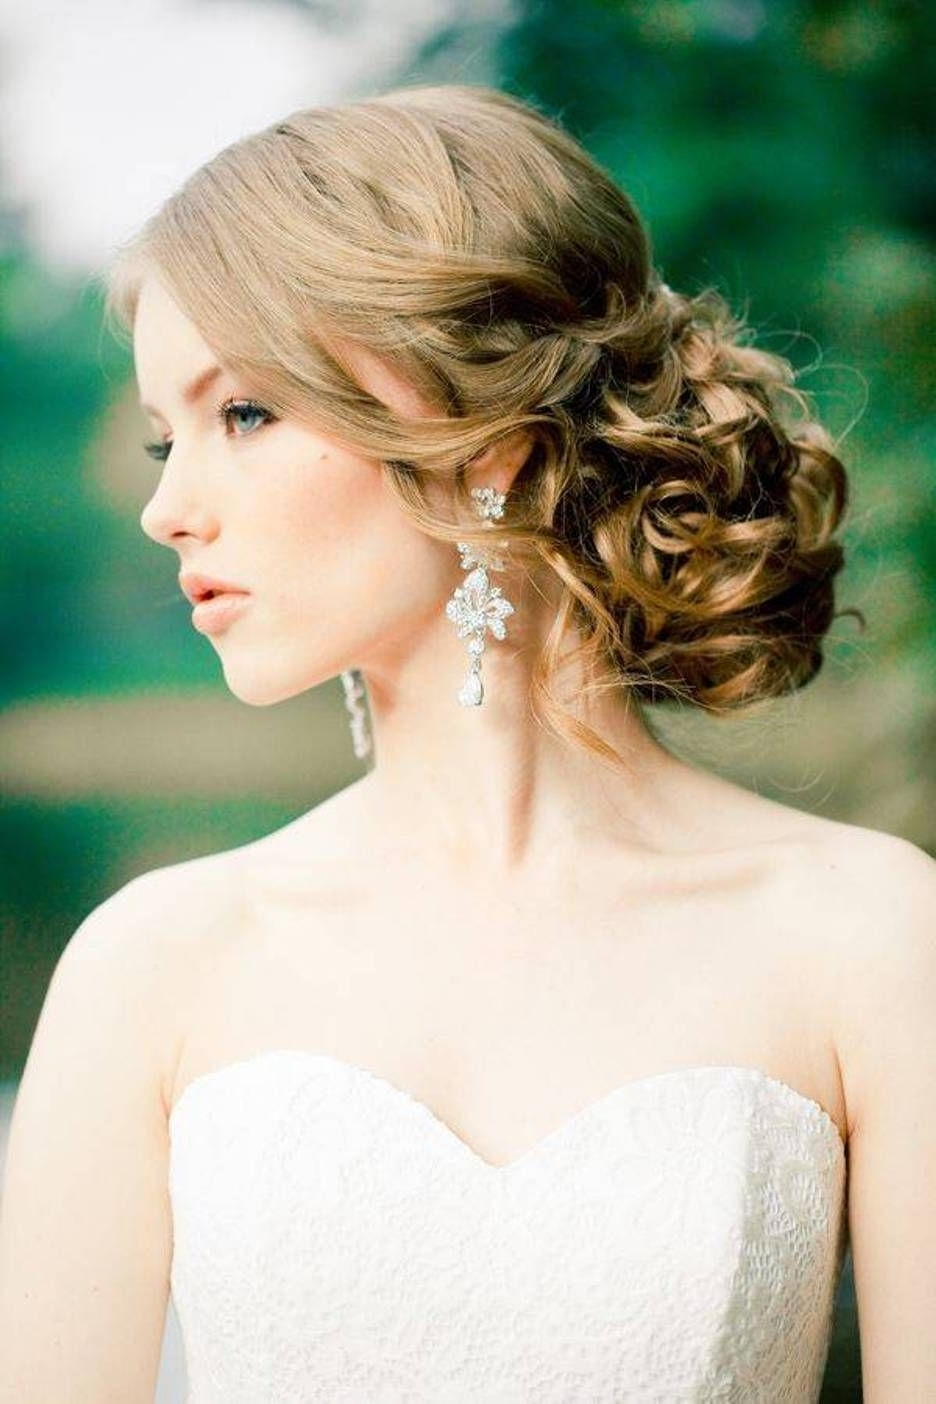 2017 Wedding Hairstyles For A Strapless Dress With What Is The Best Hairstyle (View 2 of 15)